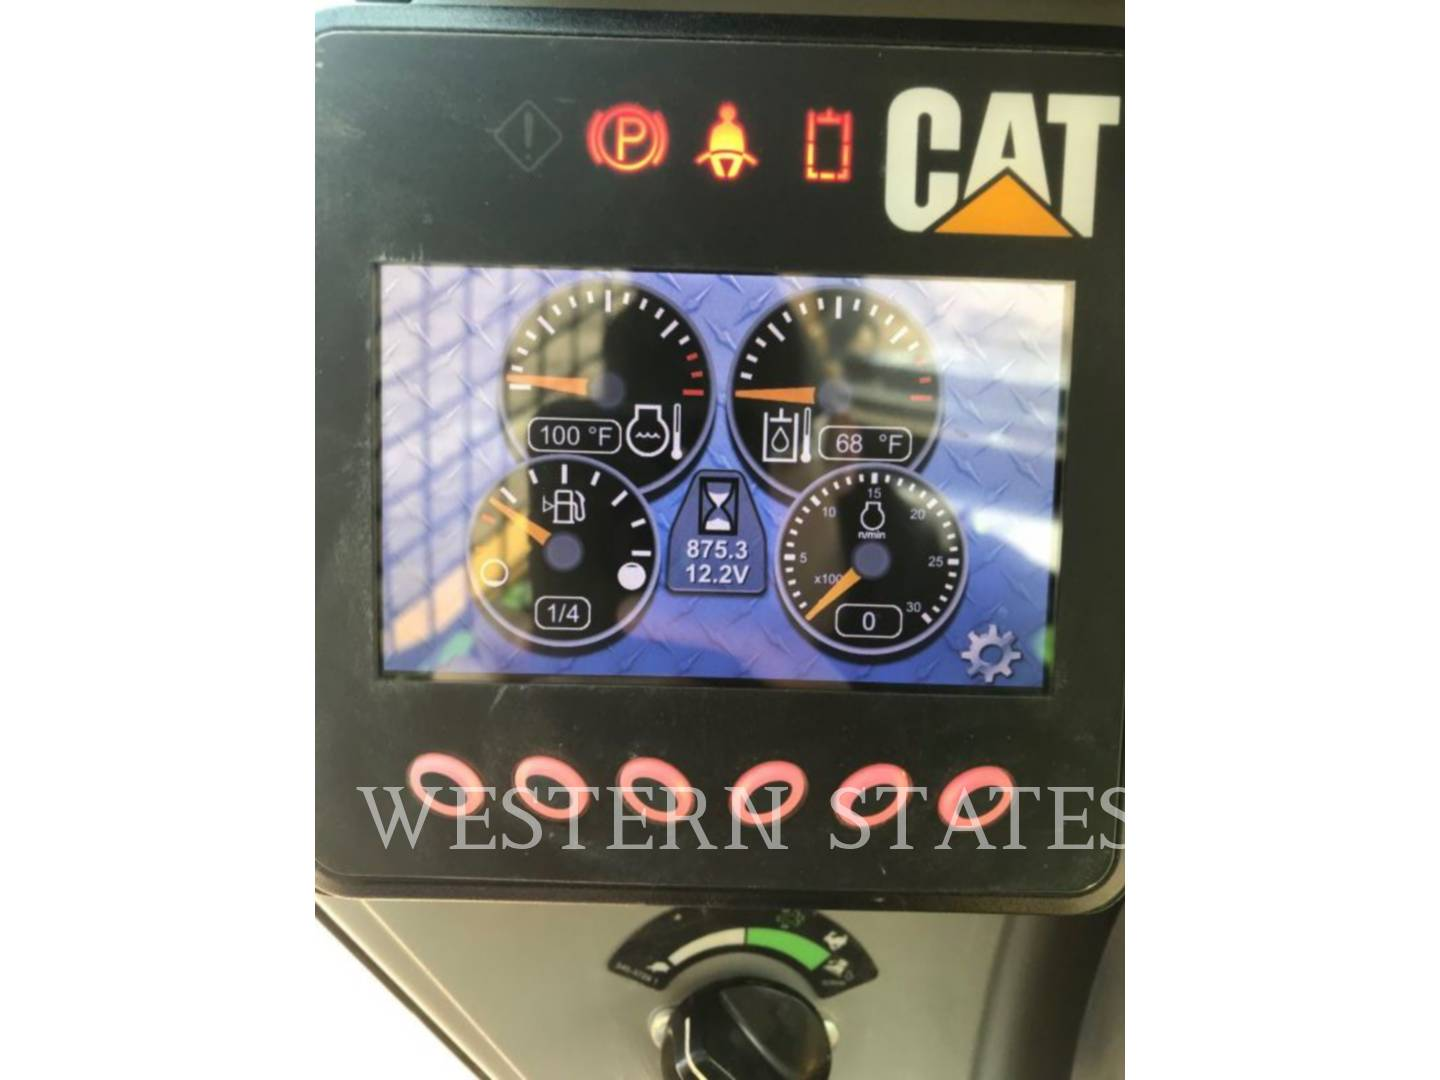 2015 CATERPILLAR 242D image6